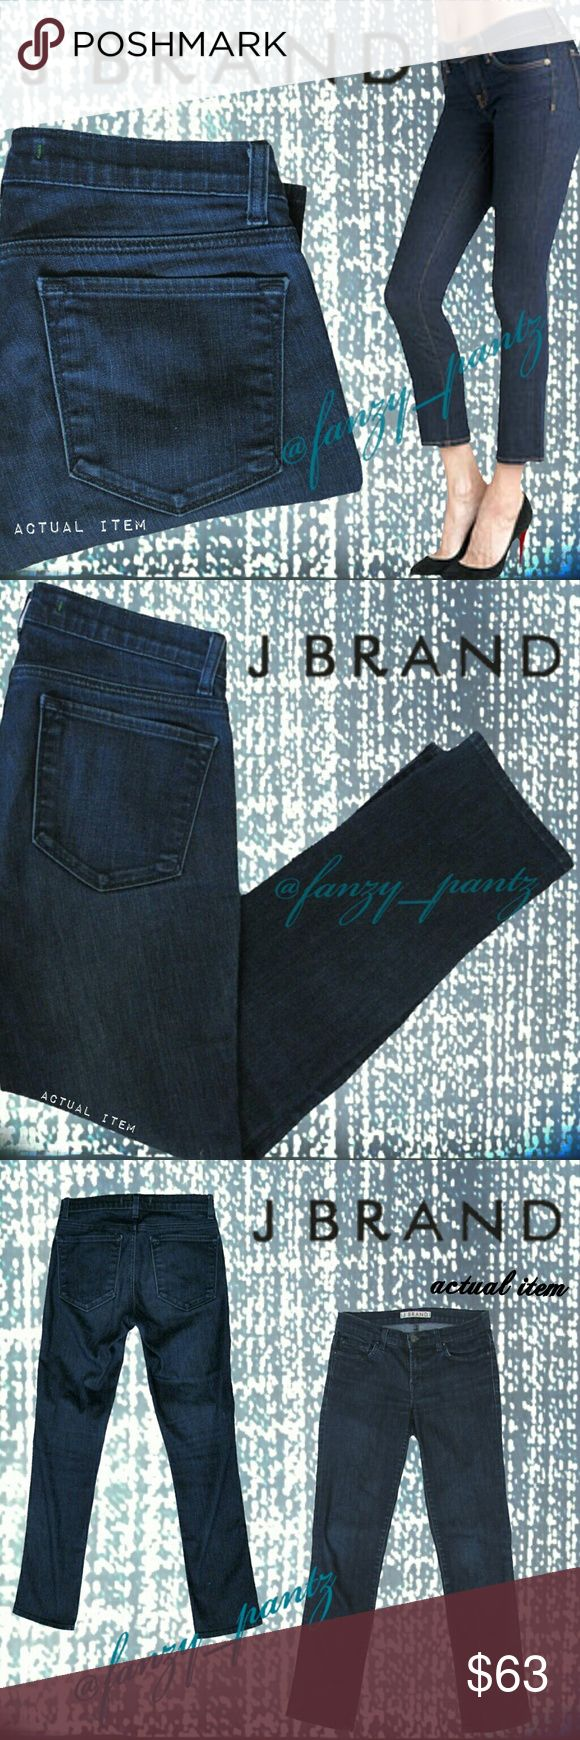 J Brand 926 Seven-Eighths ankle crop jeans 27 J Brand 926 style 7/8ths crop ~ capri~ mid-rise~ skinny~ ankle jeans in 'Eclipse' dark wash.  Photo 1 has a 'modeled' stock photo of exact style. All other photos are taken by me, of the actual item for sale. Measurements and other item details can be found in photo #5. Excellent condition. Absolutely no trades please! REASONABLE OFFERS THROUGH OFFER FEATURE ONLY PLEASE. 731750 J Brand Jeans Ankle & Cropped